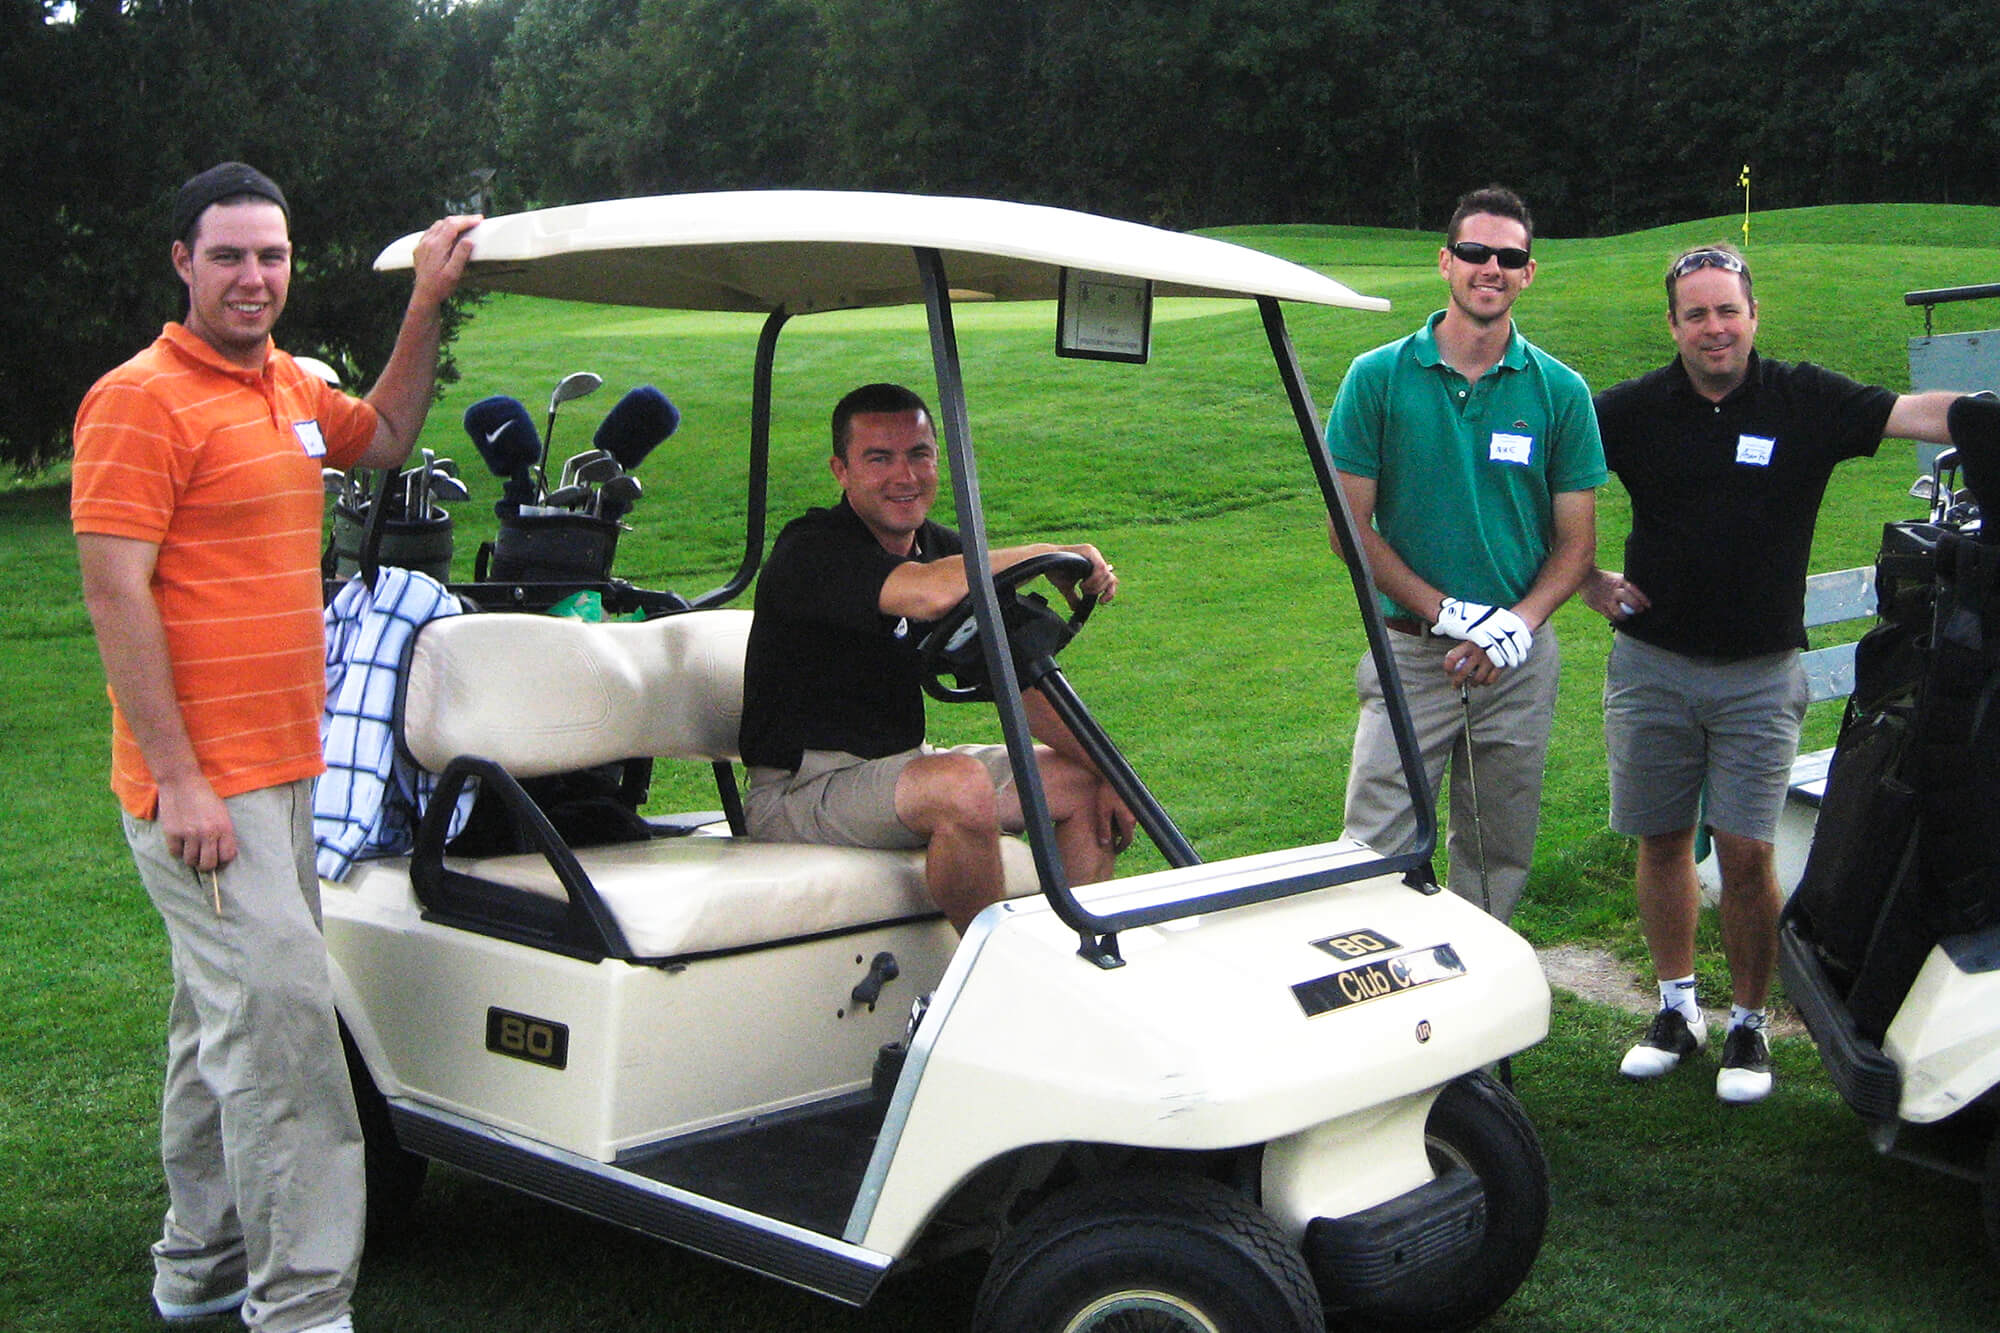 4 men on a golf course